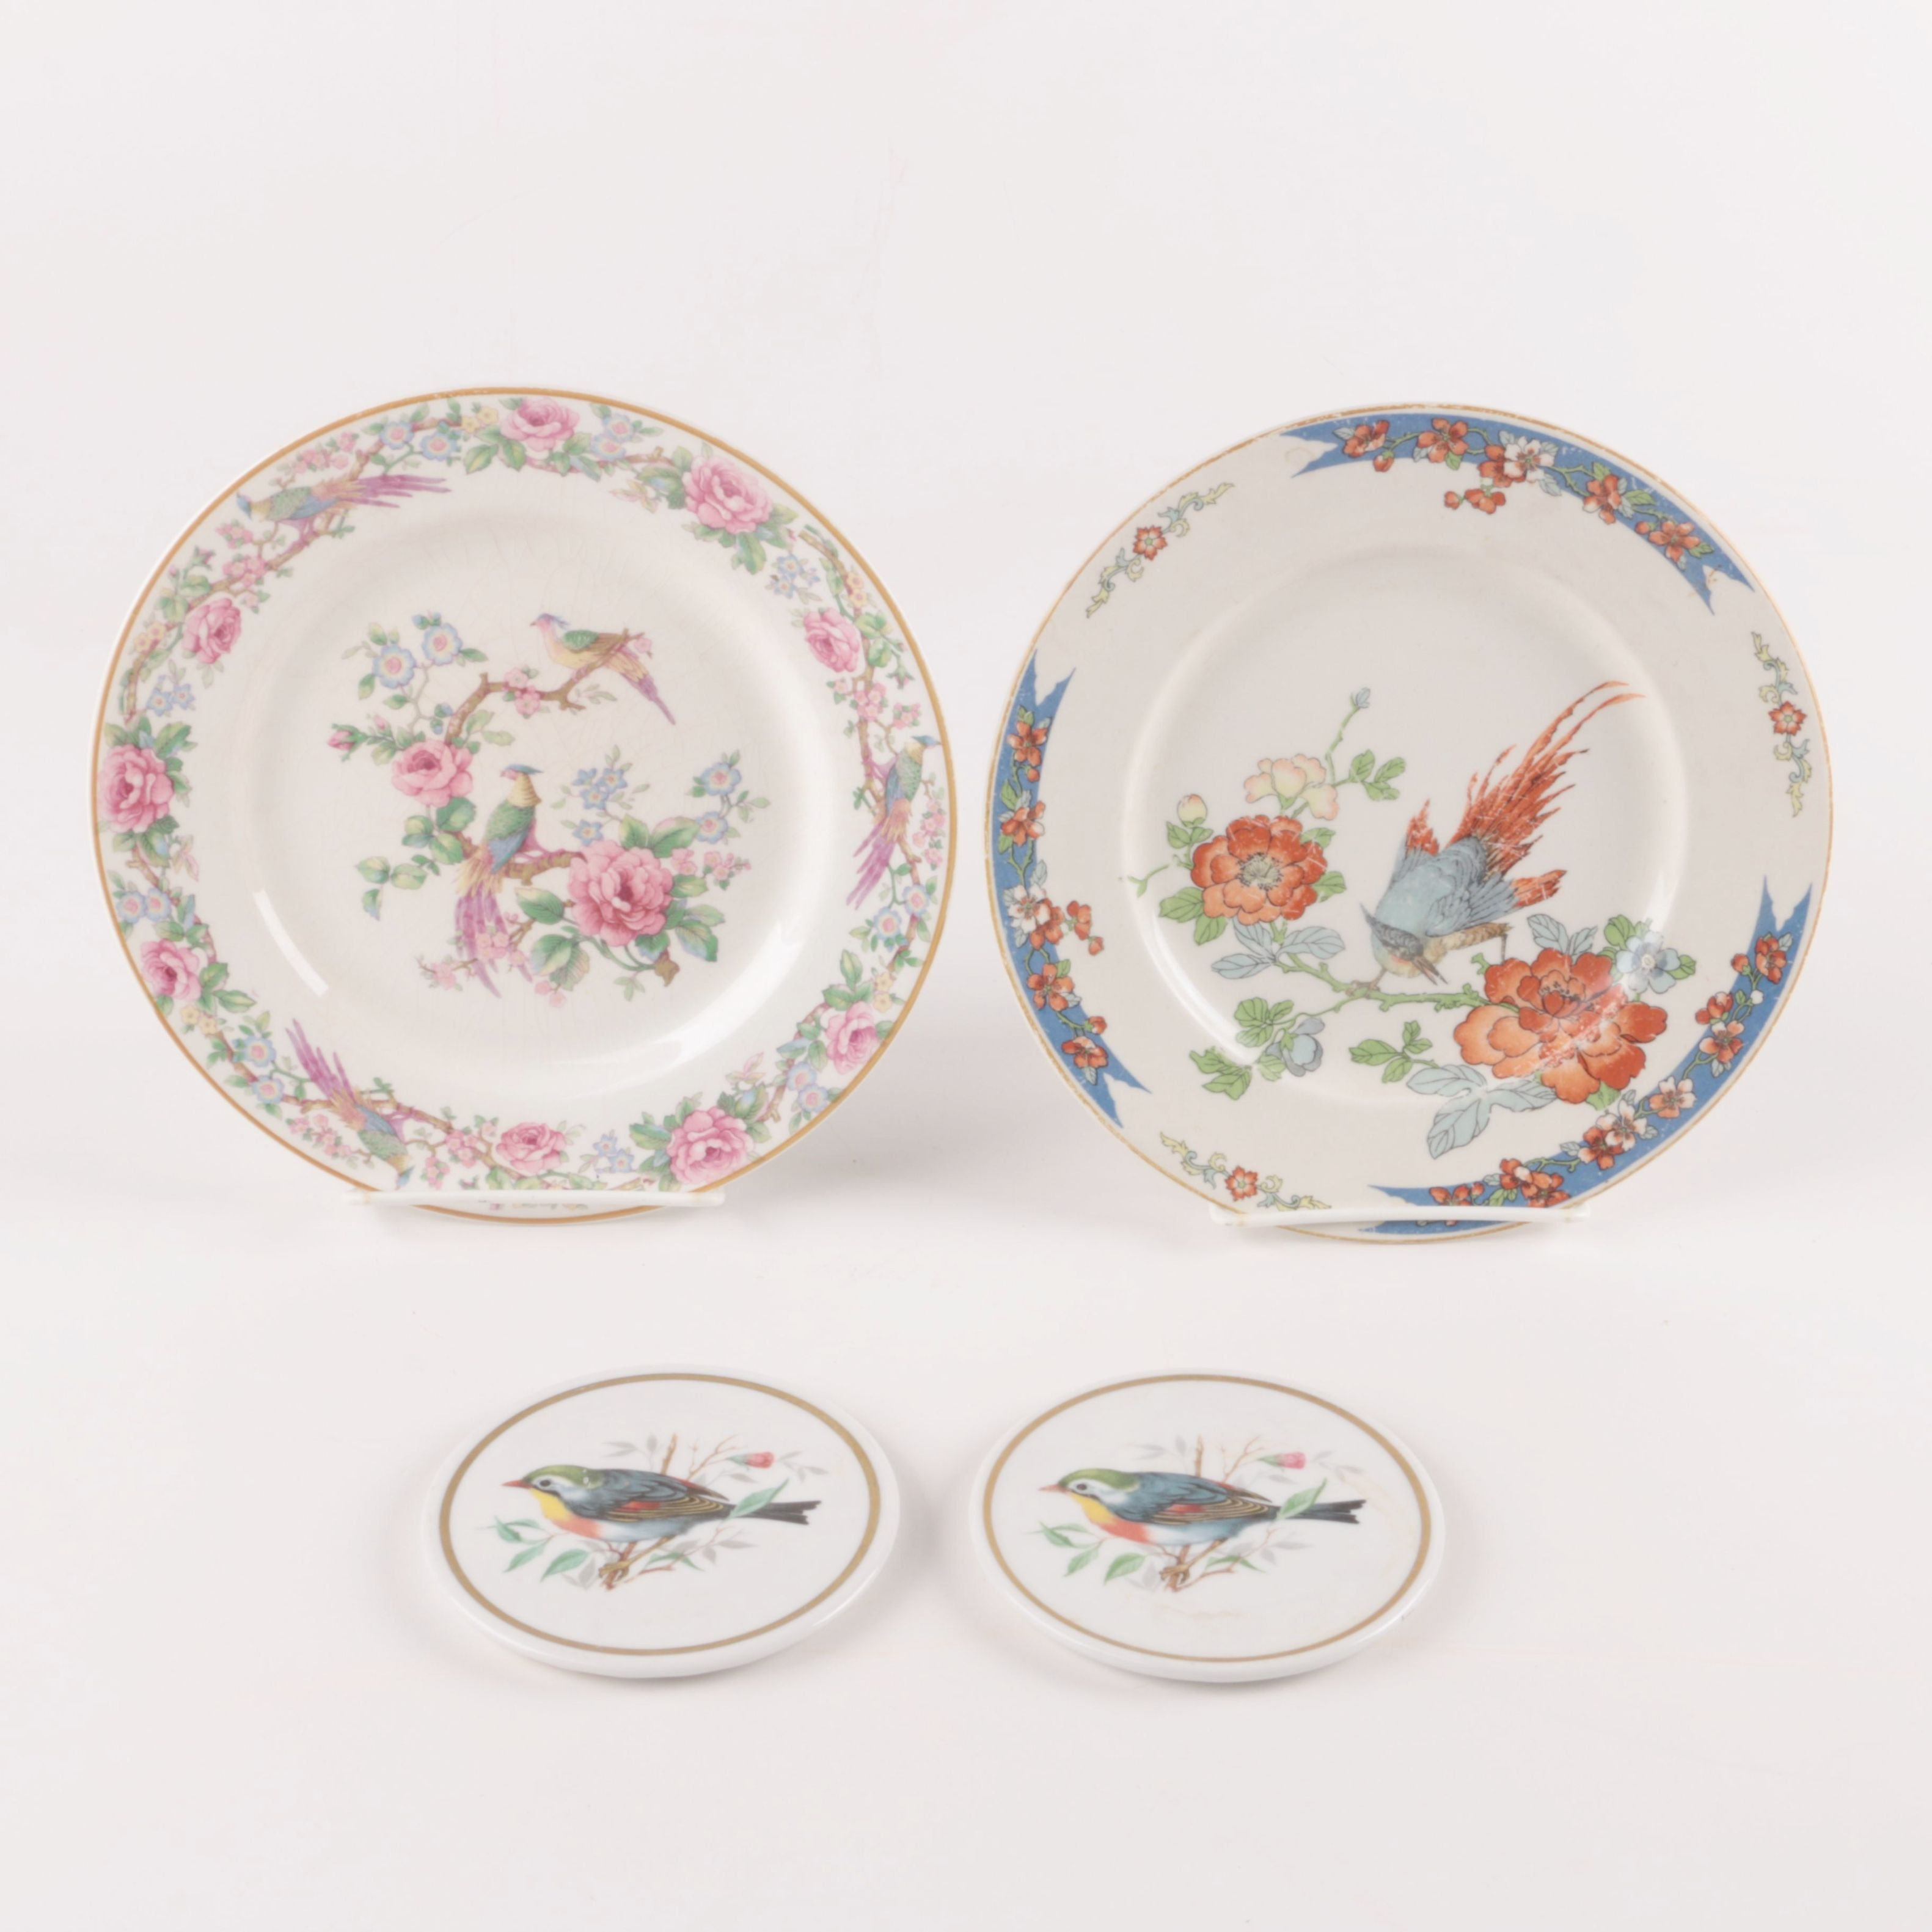 Floral Ceramic Plates and Coasters